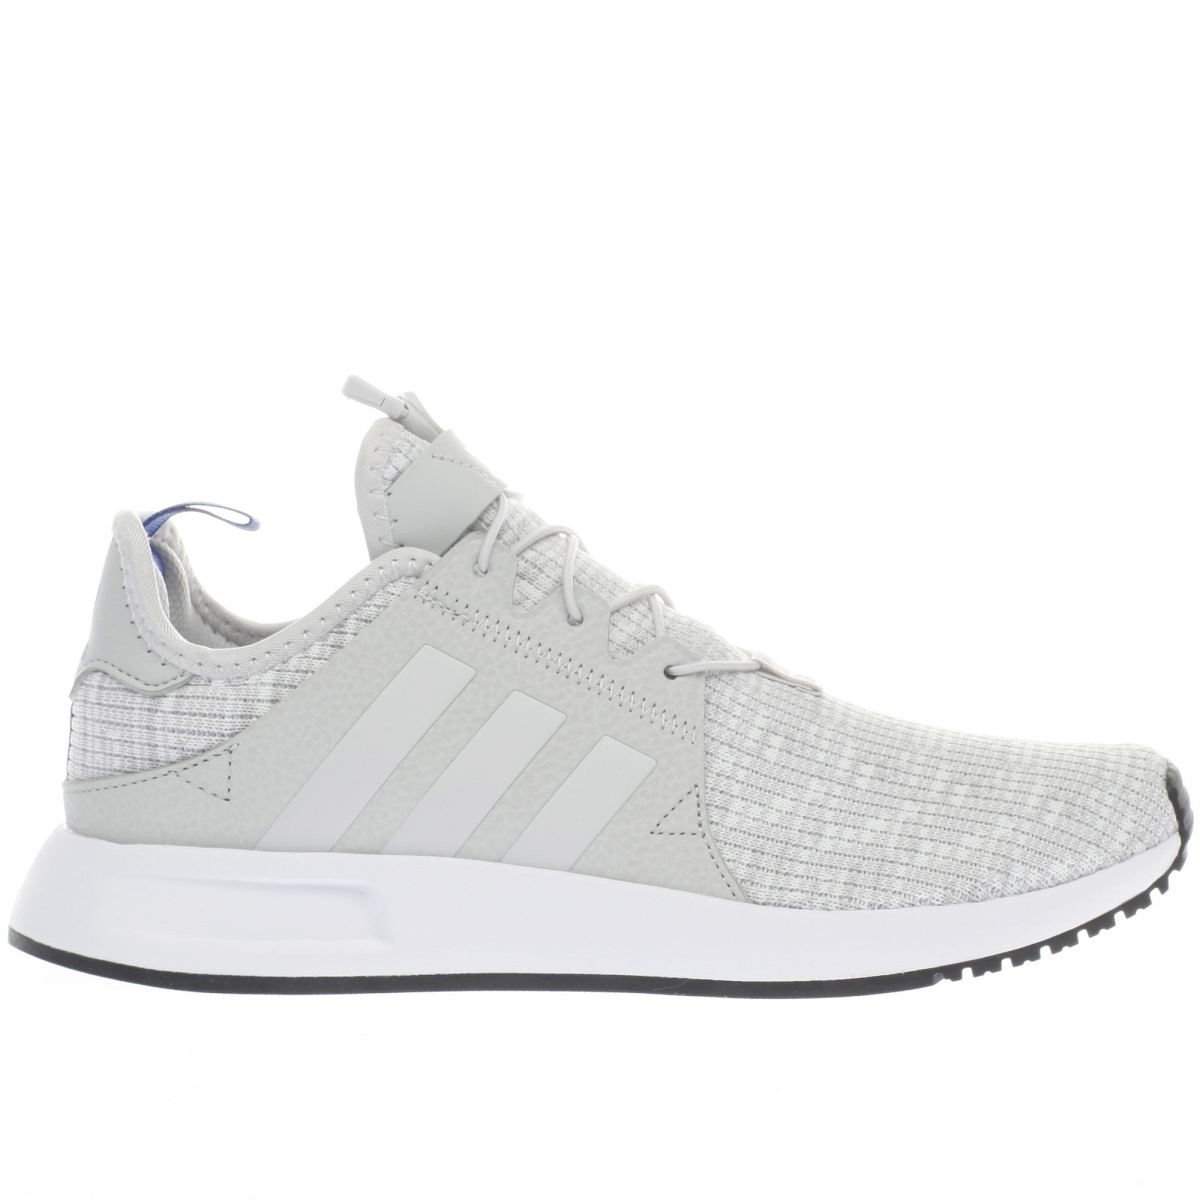 adidas light grey x_plr Boys Youth Trainers